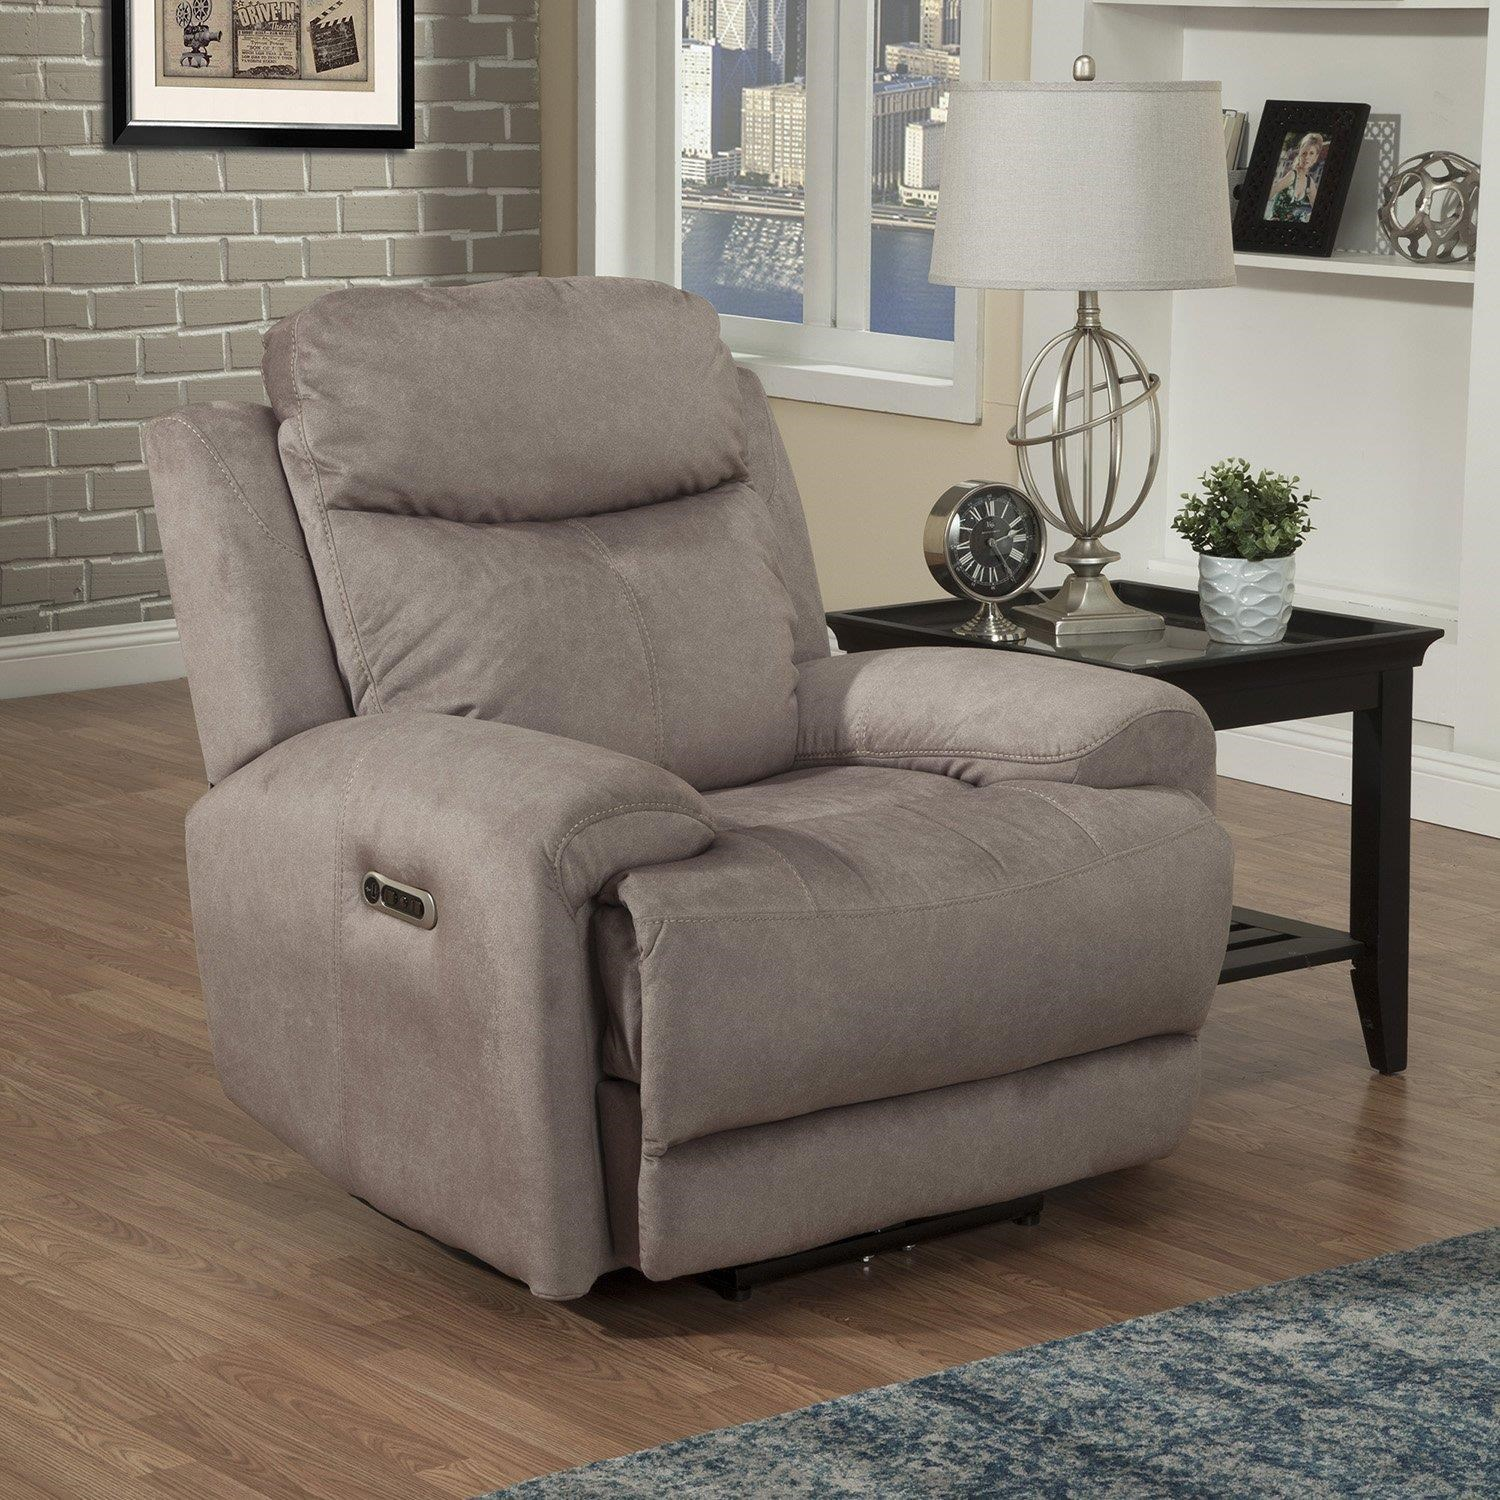 Bowie Power Recliner and Headrest W/ USB by Parker House at Johnny Janosik